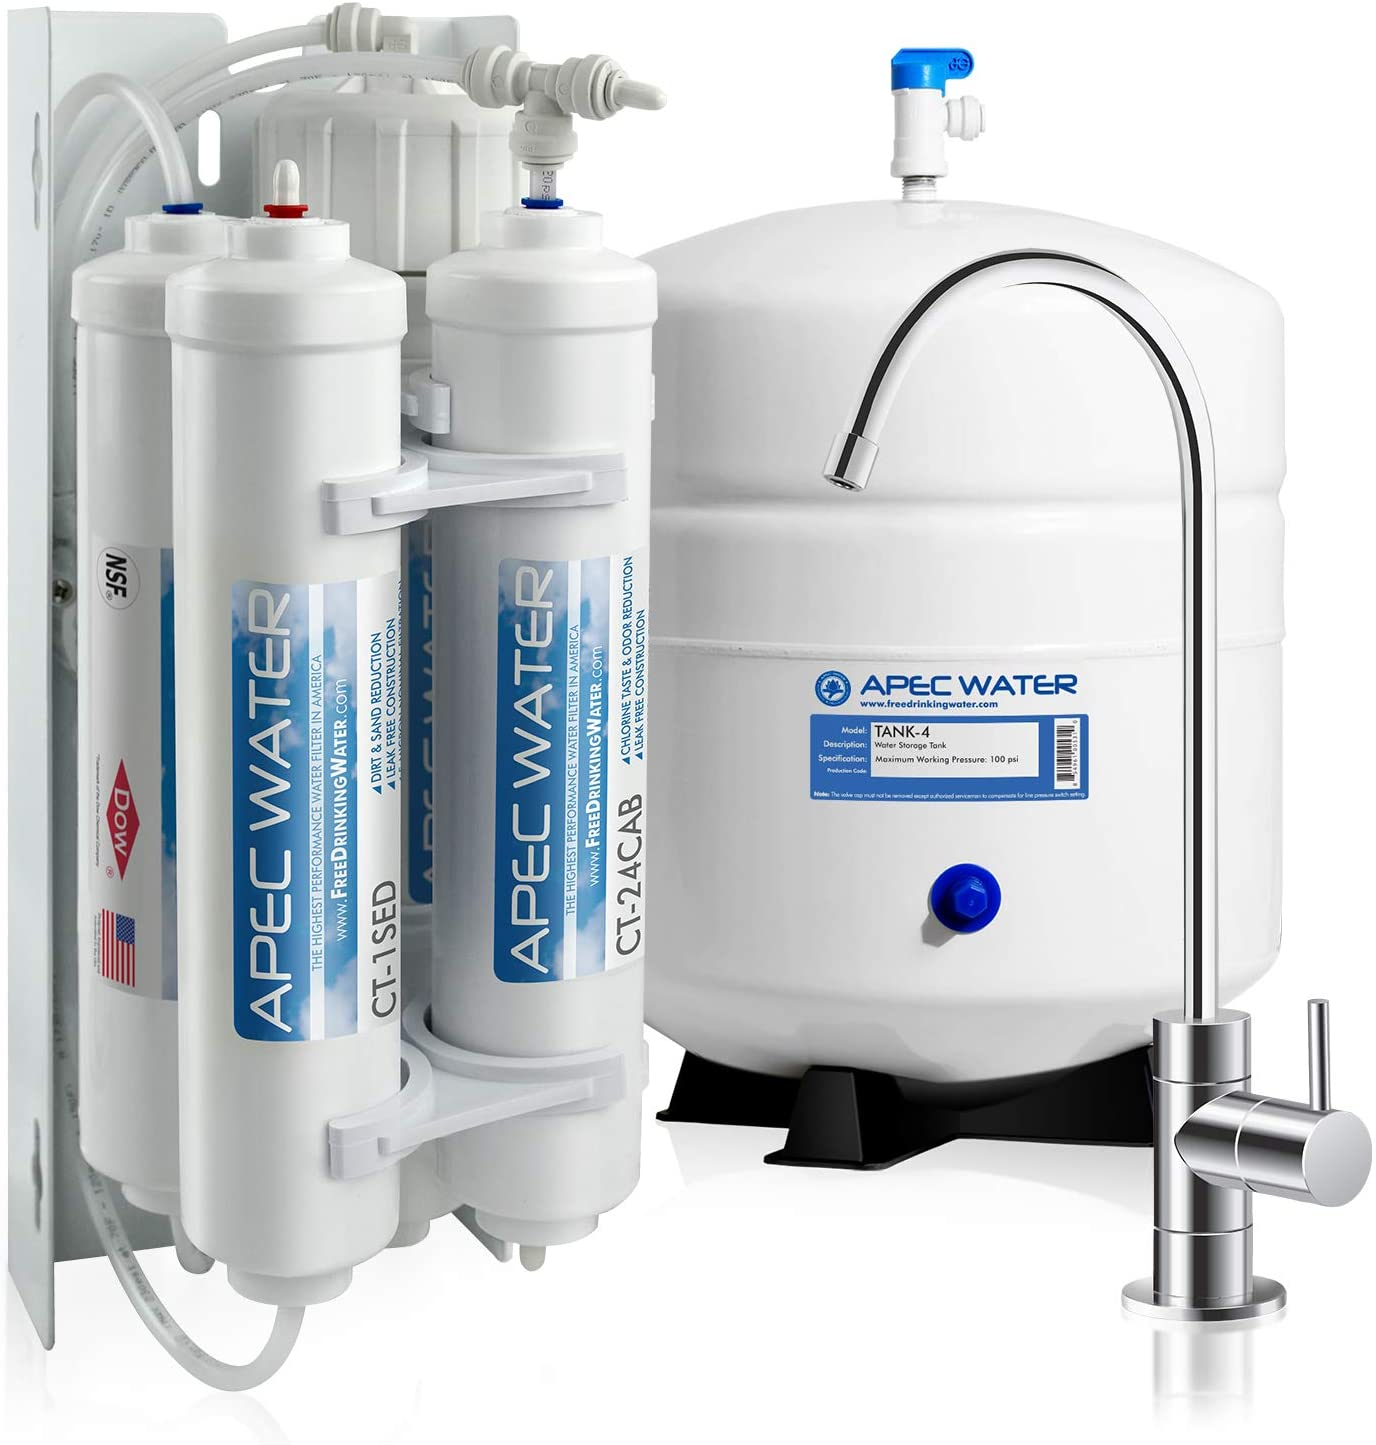 APEC Water RO-QUICK90 Reverse Osmosis System